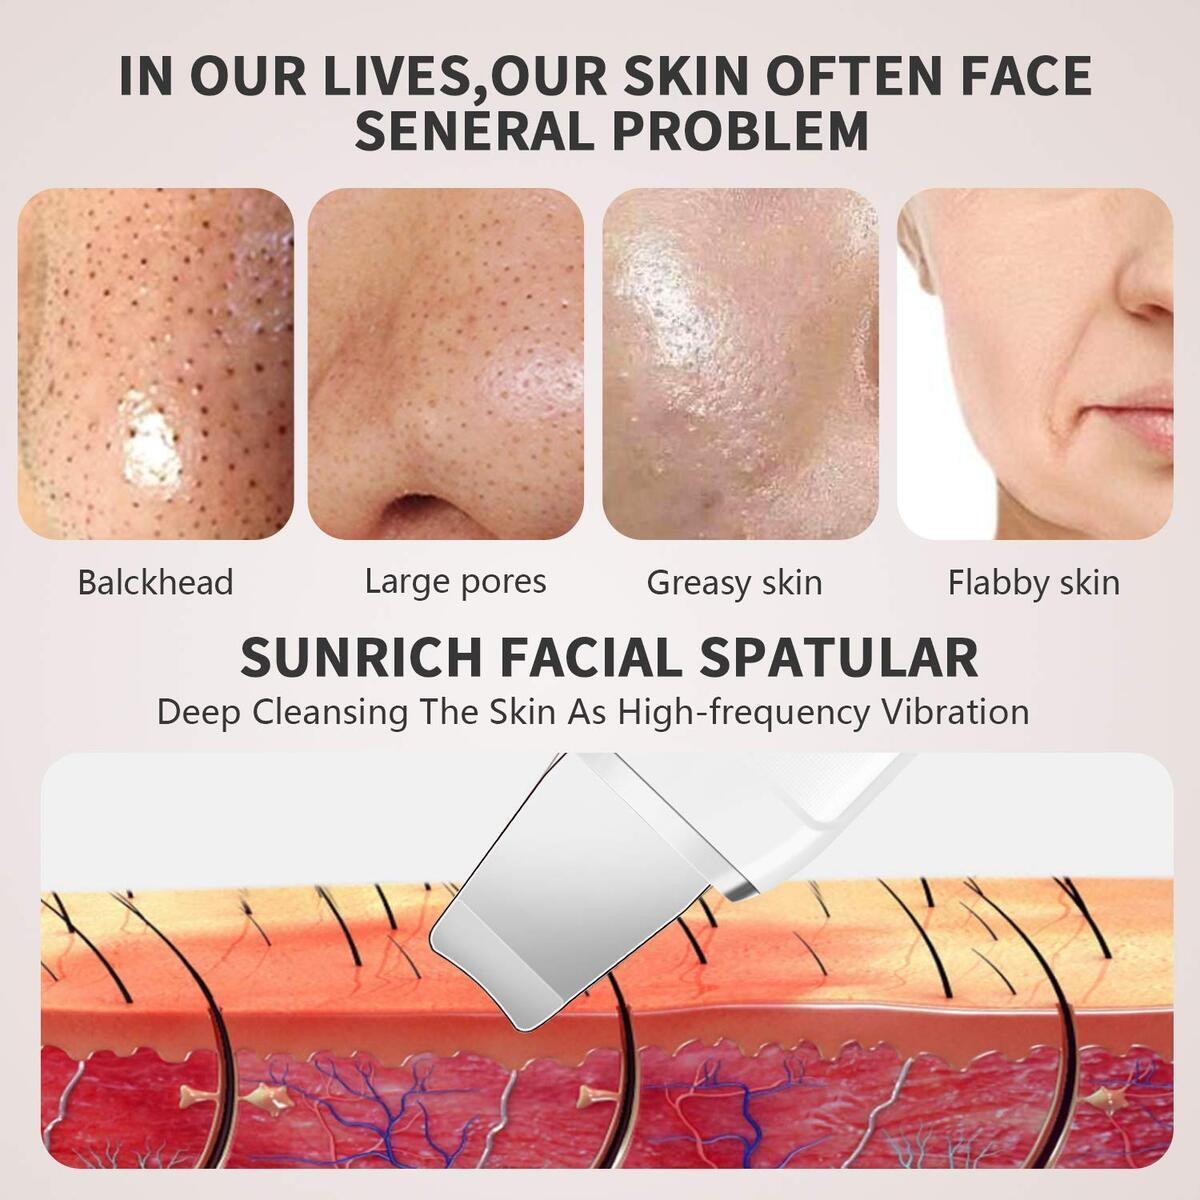 Skin Scrubber Face Spatula Blackhead Remover Facial Scraper Pore Cleaner Acne Comedone Extractor for Face Deep Cleansing Lifting Moisturizing by Sunrich